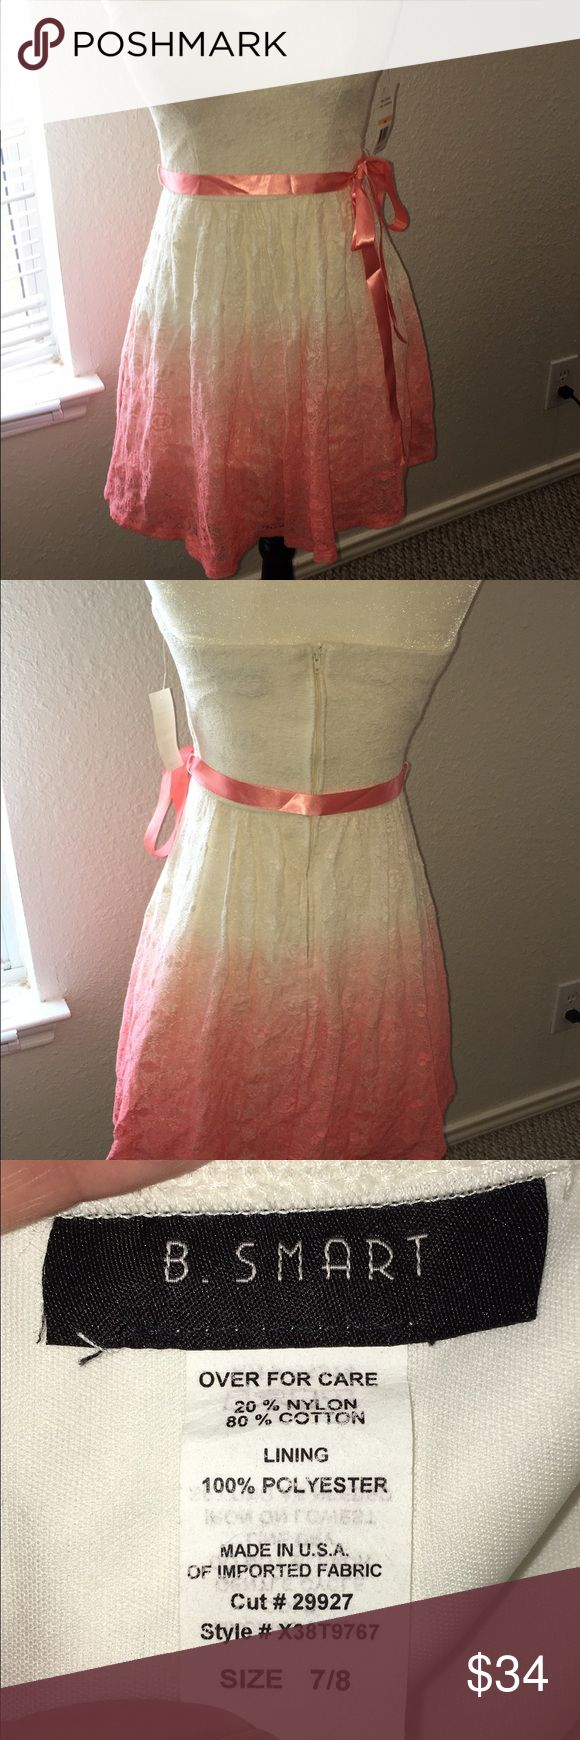 B Smart size 7/8 pink ombré NWT dress starts out with a cream color on top then flows into a pink ombré toward the bottom. Strapless. Brand new never worn. Has grip lines on the side of chest to get it a comfortable hold in place. Comes with a pink sash to make into a bow. Has bra lining pads inside for placement. Has three layers. ⭐️bundle for extra savings. B Smart Dresses Mini